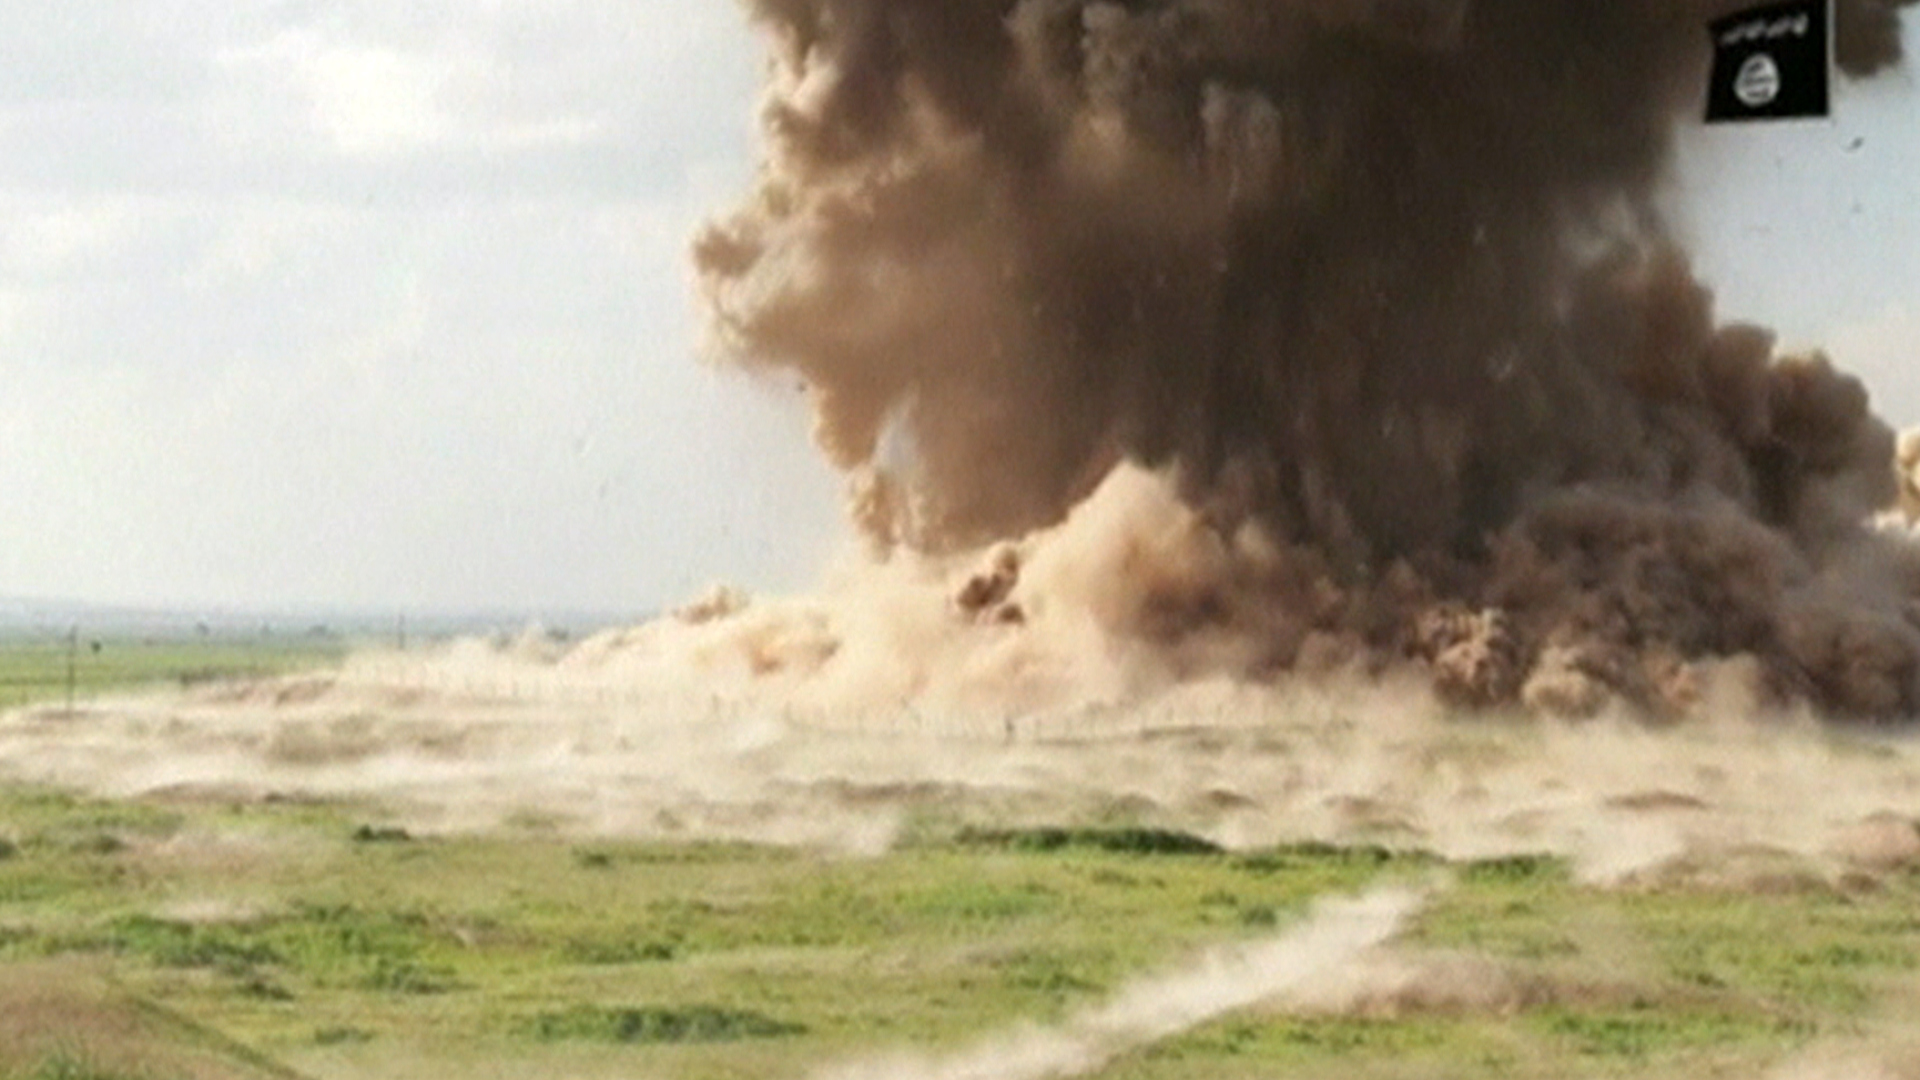 ISIS Video Shows Apparent Destruction of Nimrud Archaeological Site